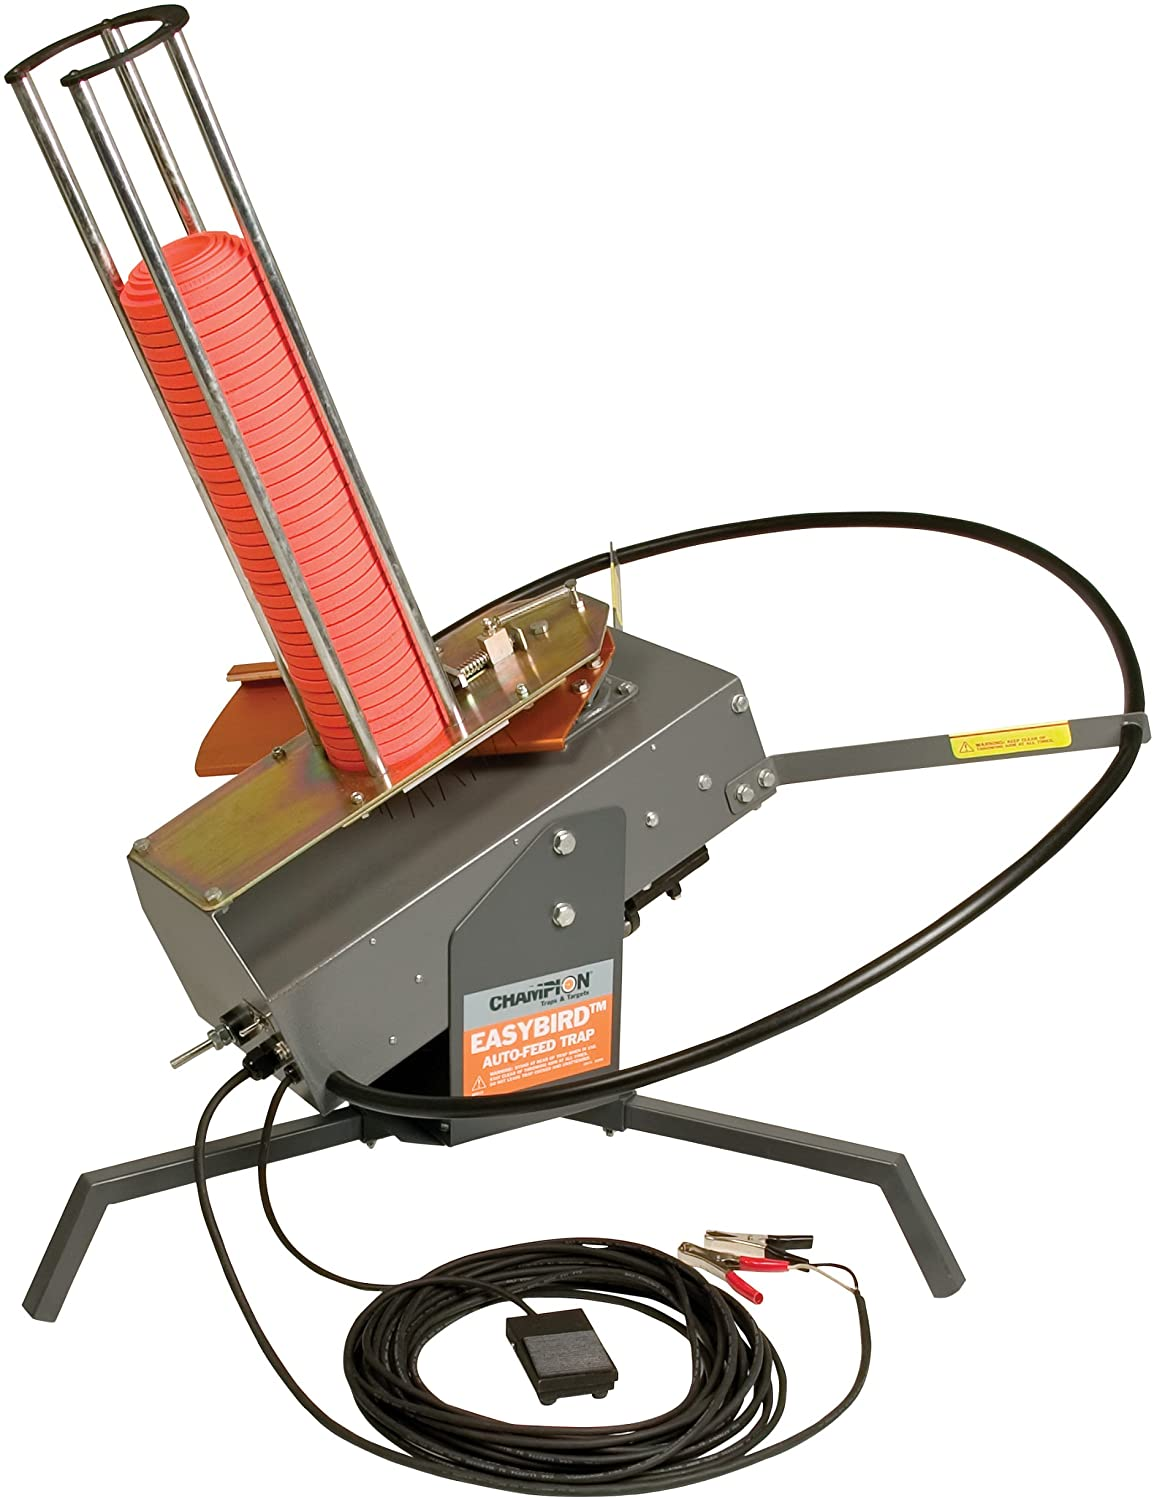 champion easybird auto feed trap with power cord